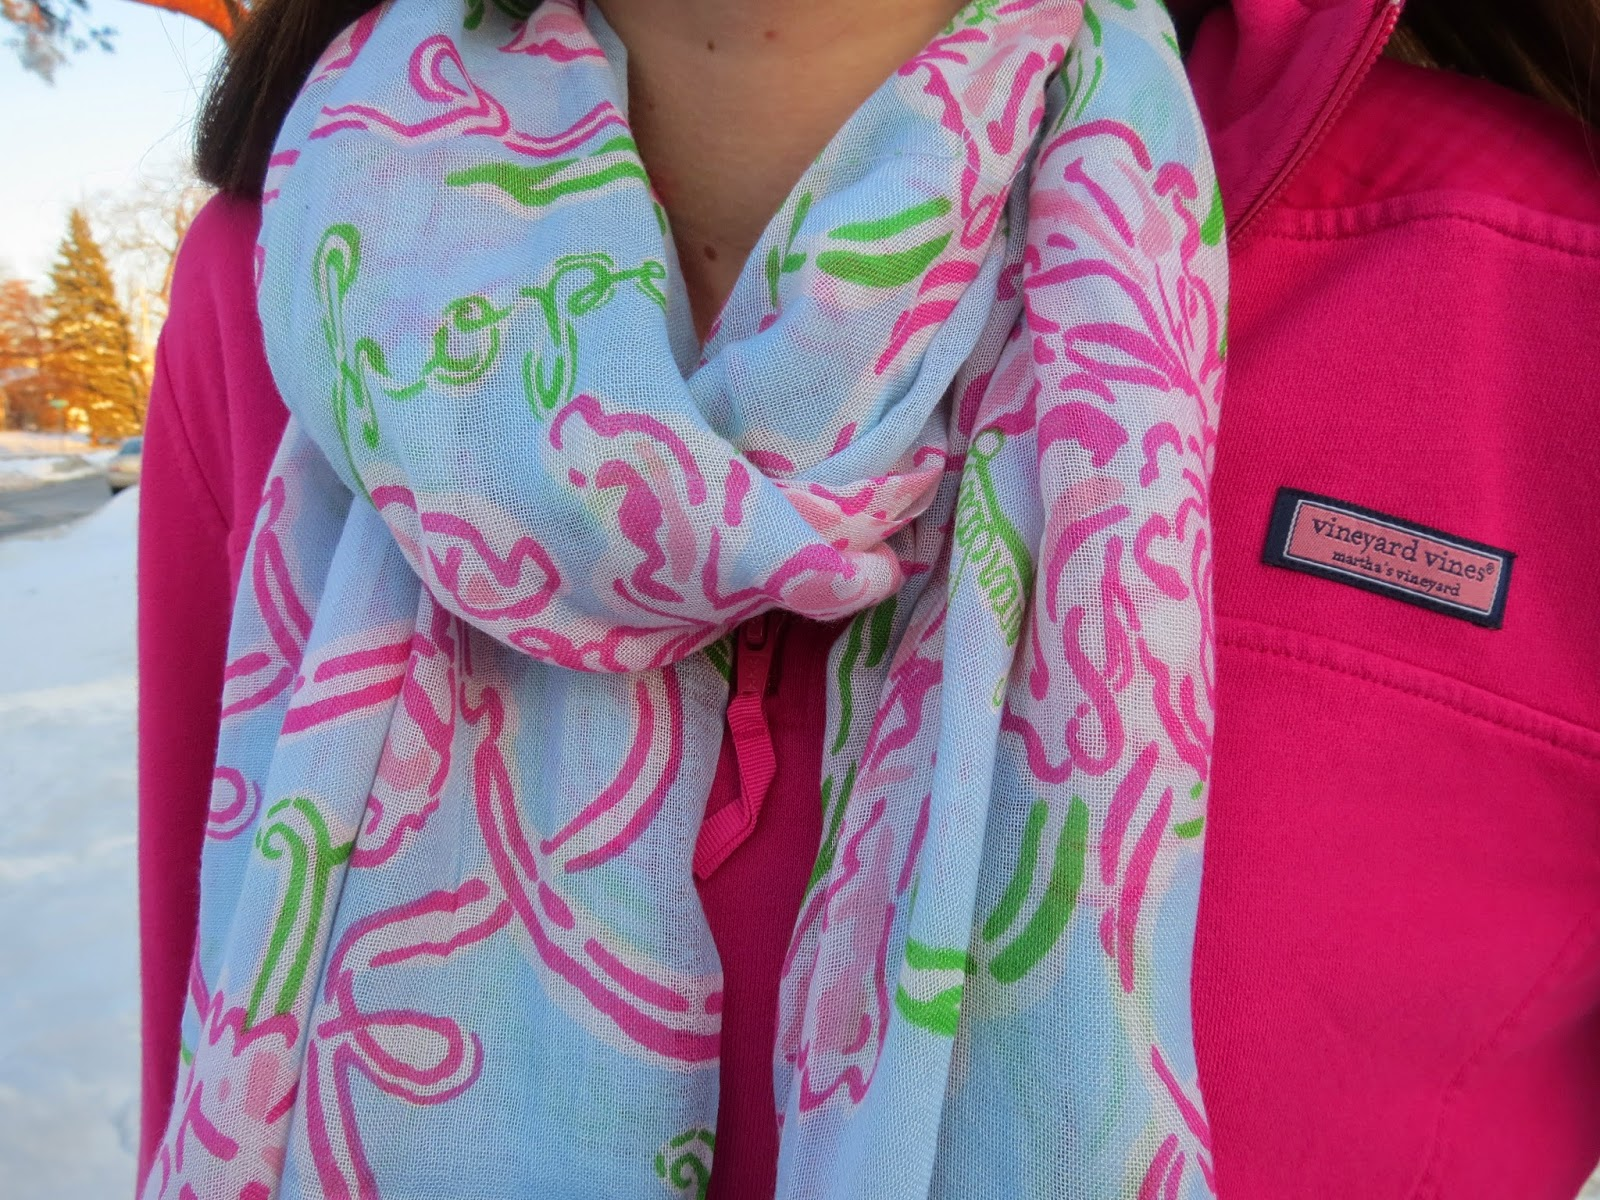 Lilly Pulitzer Murfee Scarf (similar Style Here), Vineyard Vines Shep Shirt  (similar Style Here), Zella Leggings (nordstrom), Ll Bean Boots (currently  On